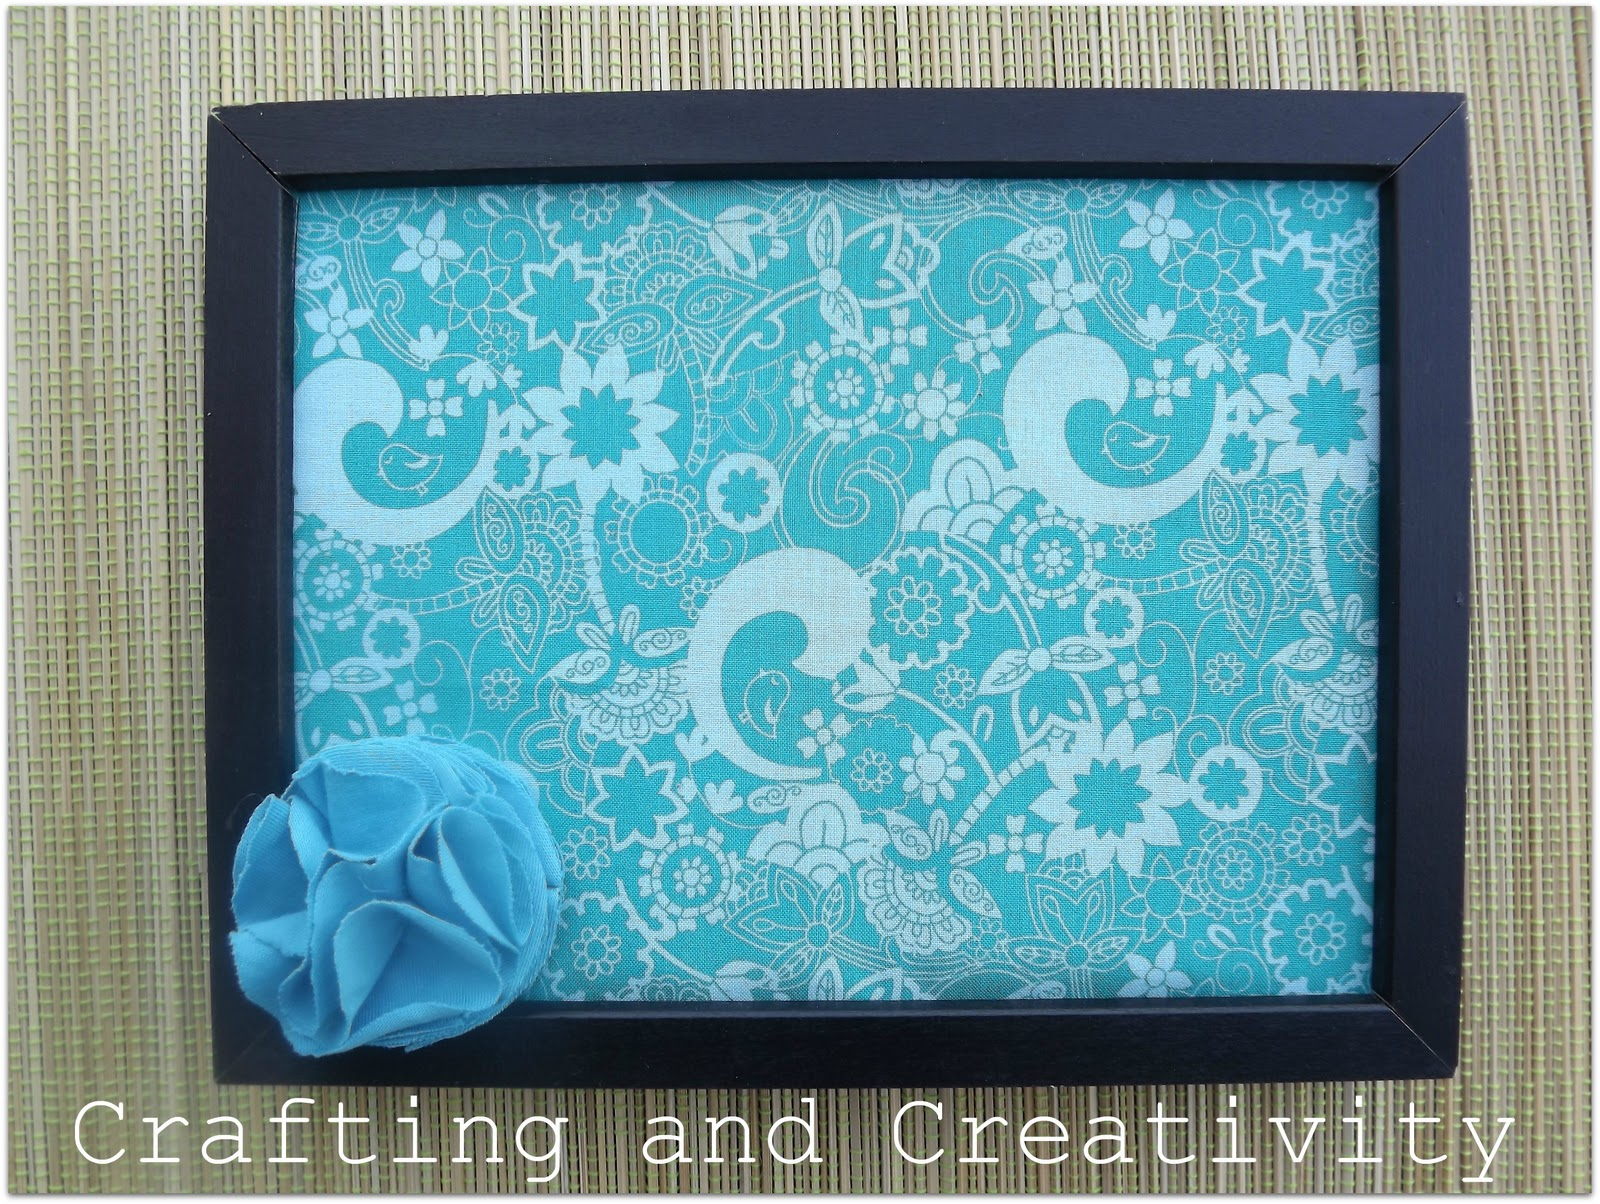 Crafting And Creativity Diy Fabric Covered Bulletin Board